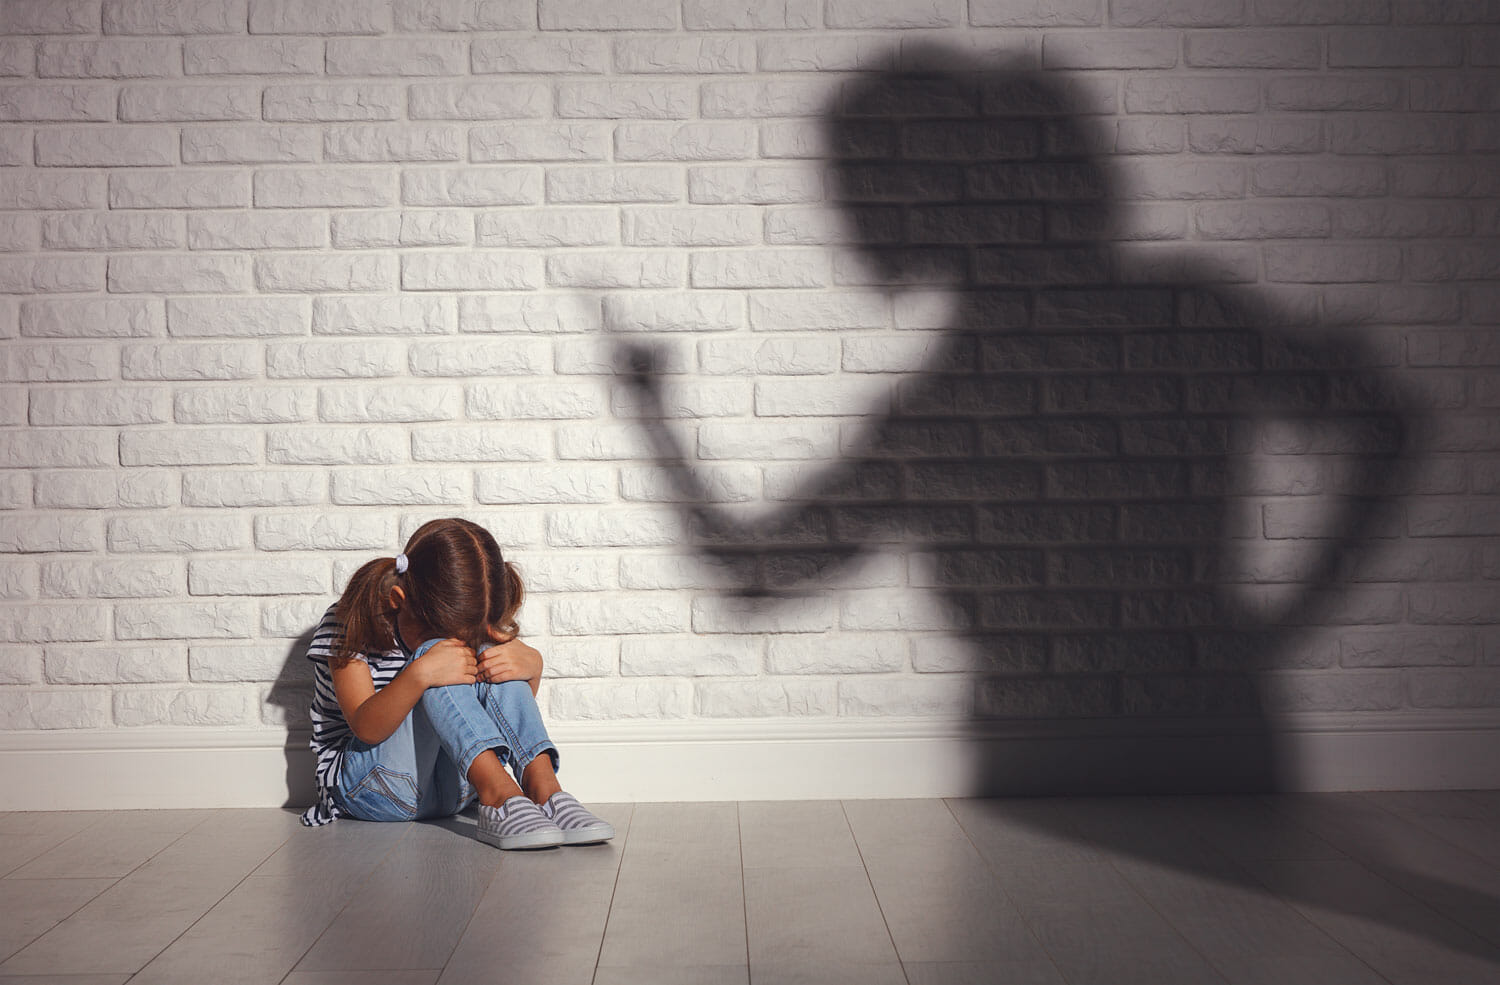 leaving an abusive household with kids